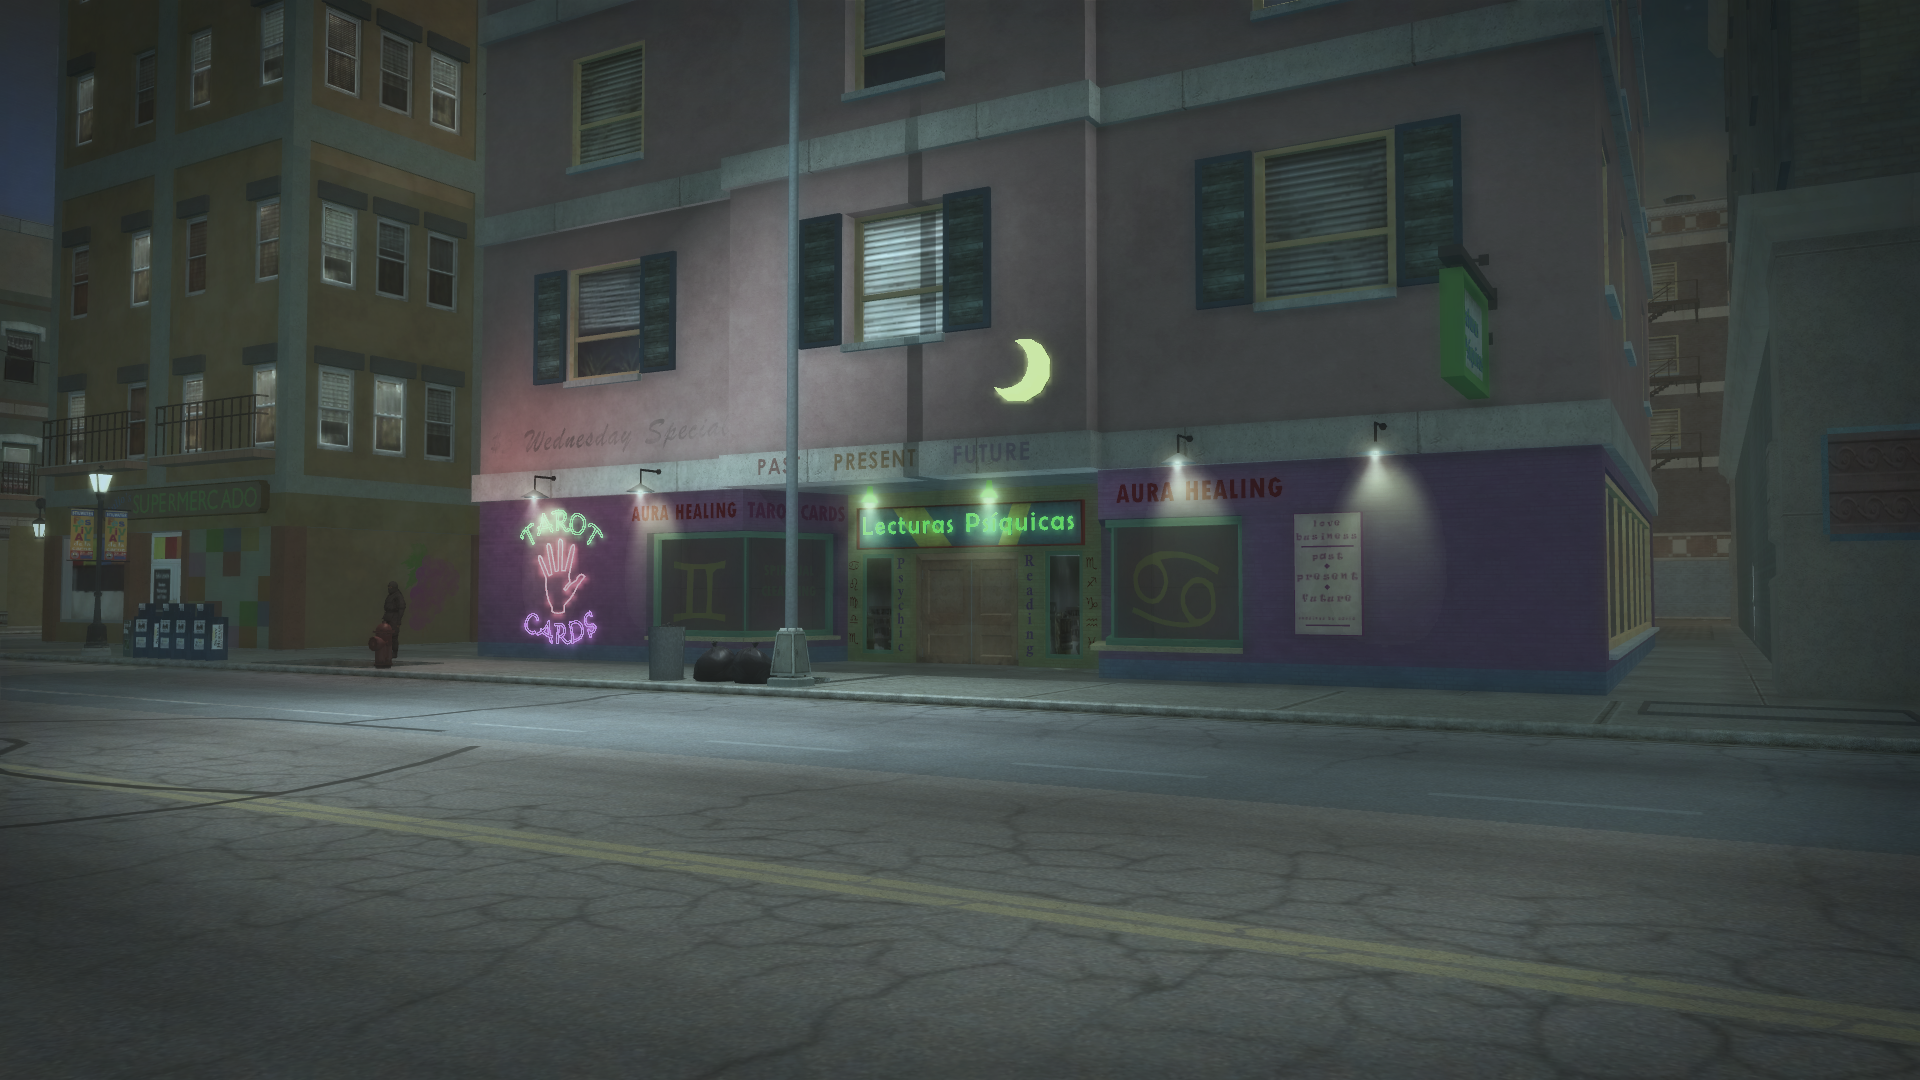 File:Location of Tarot store shown in The Anna Show cutscene.png